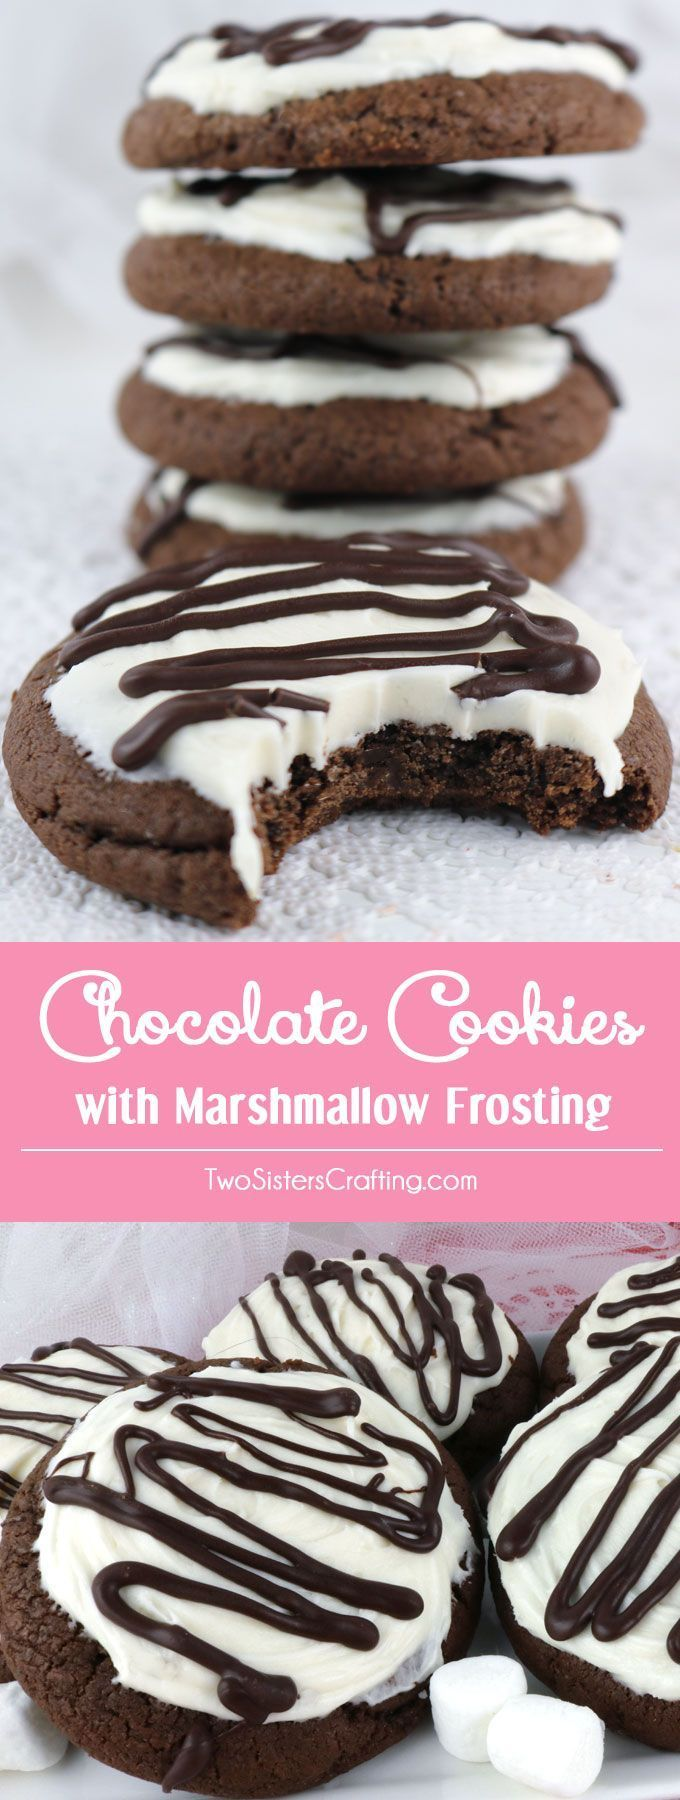 Chocolate Cookies with Marshmallow Frosting - sweet, chocolatey and covered with our deliciously sweet Marshmallow Buttercream Frosting. These yummy frosted cookies are easy to make and taste just like a chocolate marshmallow candy. Pin this yummy Cookie Recipe for later and and follow us for more great Cookie Ideas.